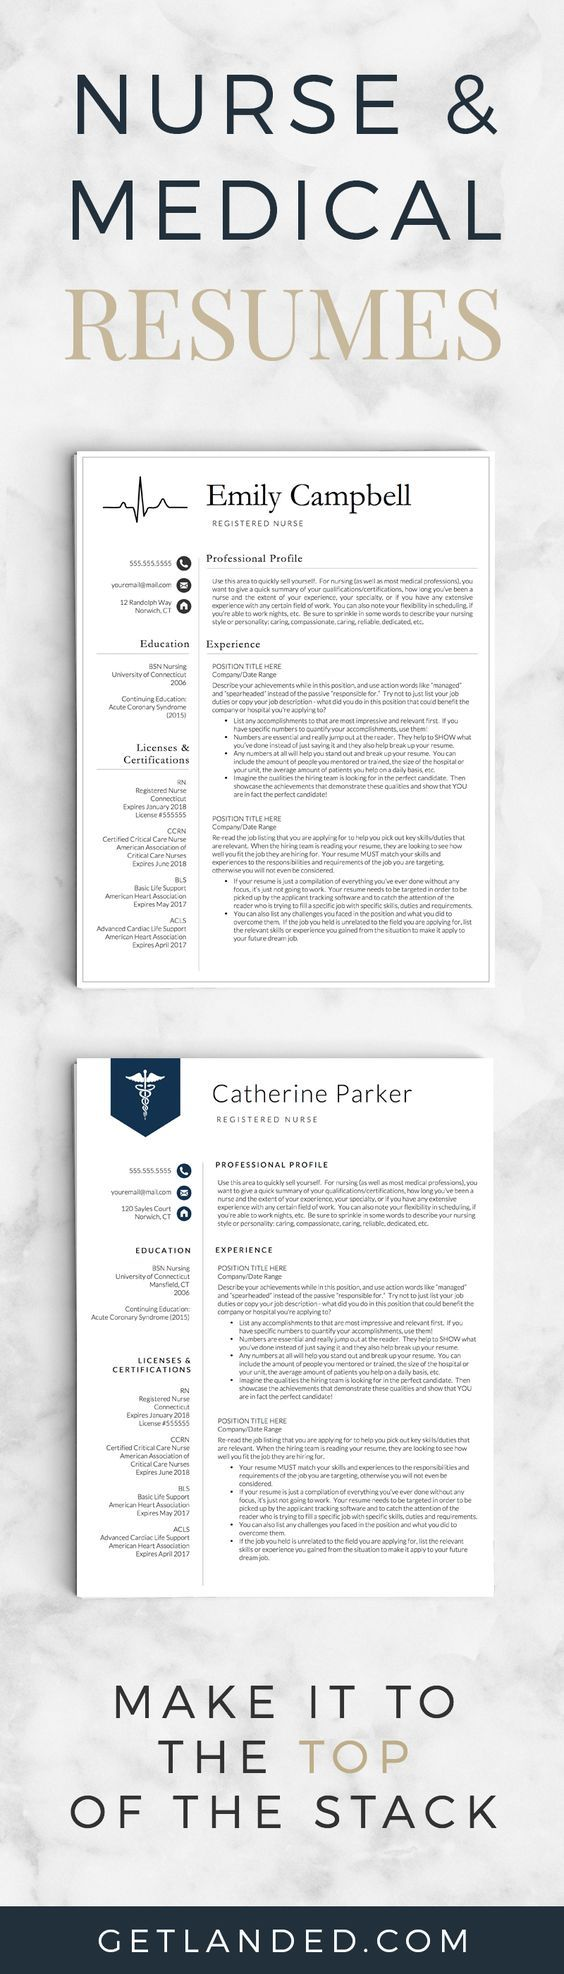 nurse resume templates medical resumes resume templates specifically designed for the nursing profession - Nursing Resumes Templates